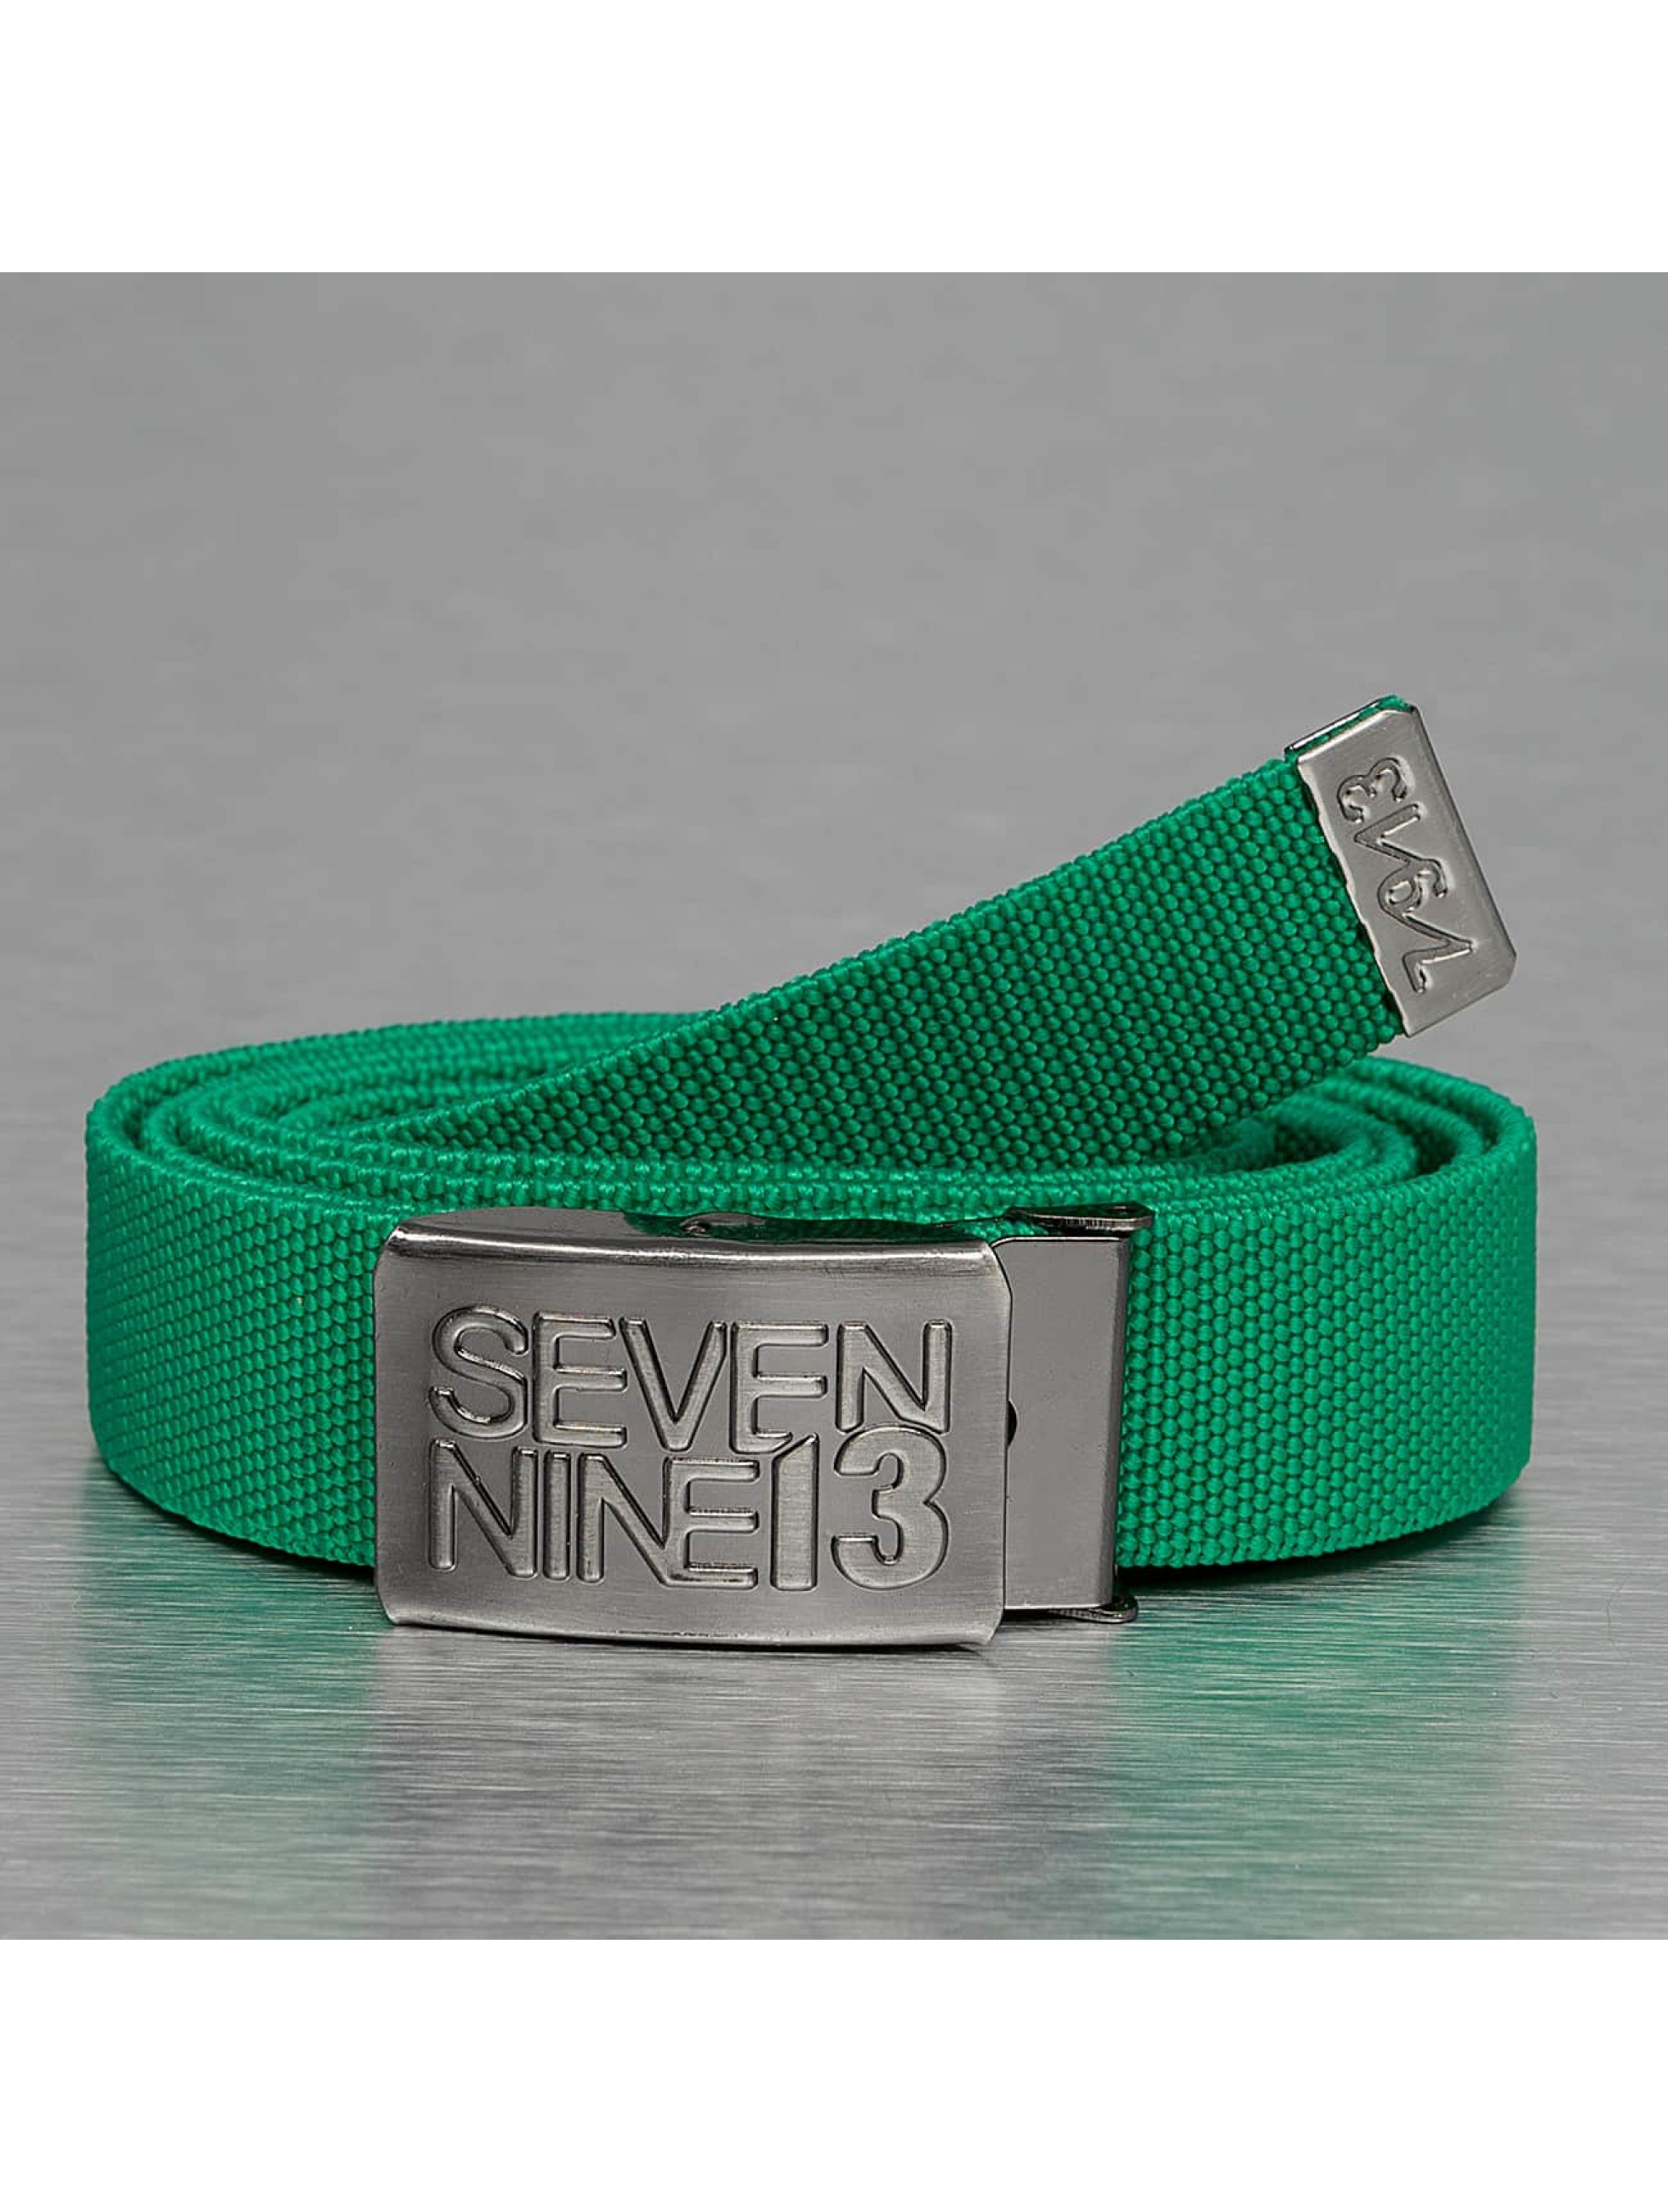 Seven Nine 13 Belts Jaws Stretch grøn